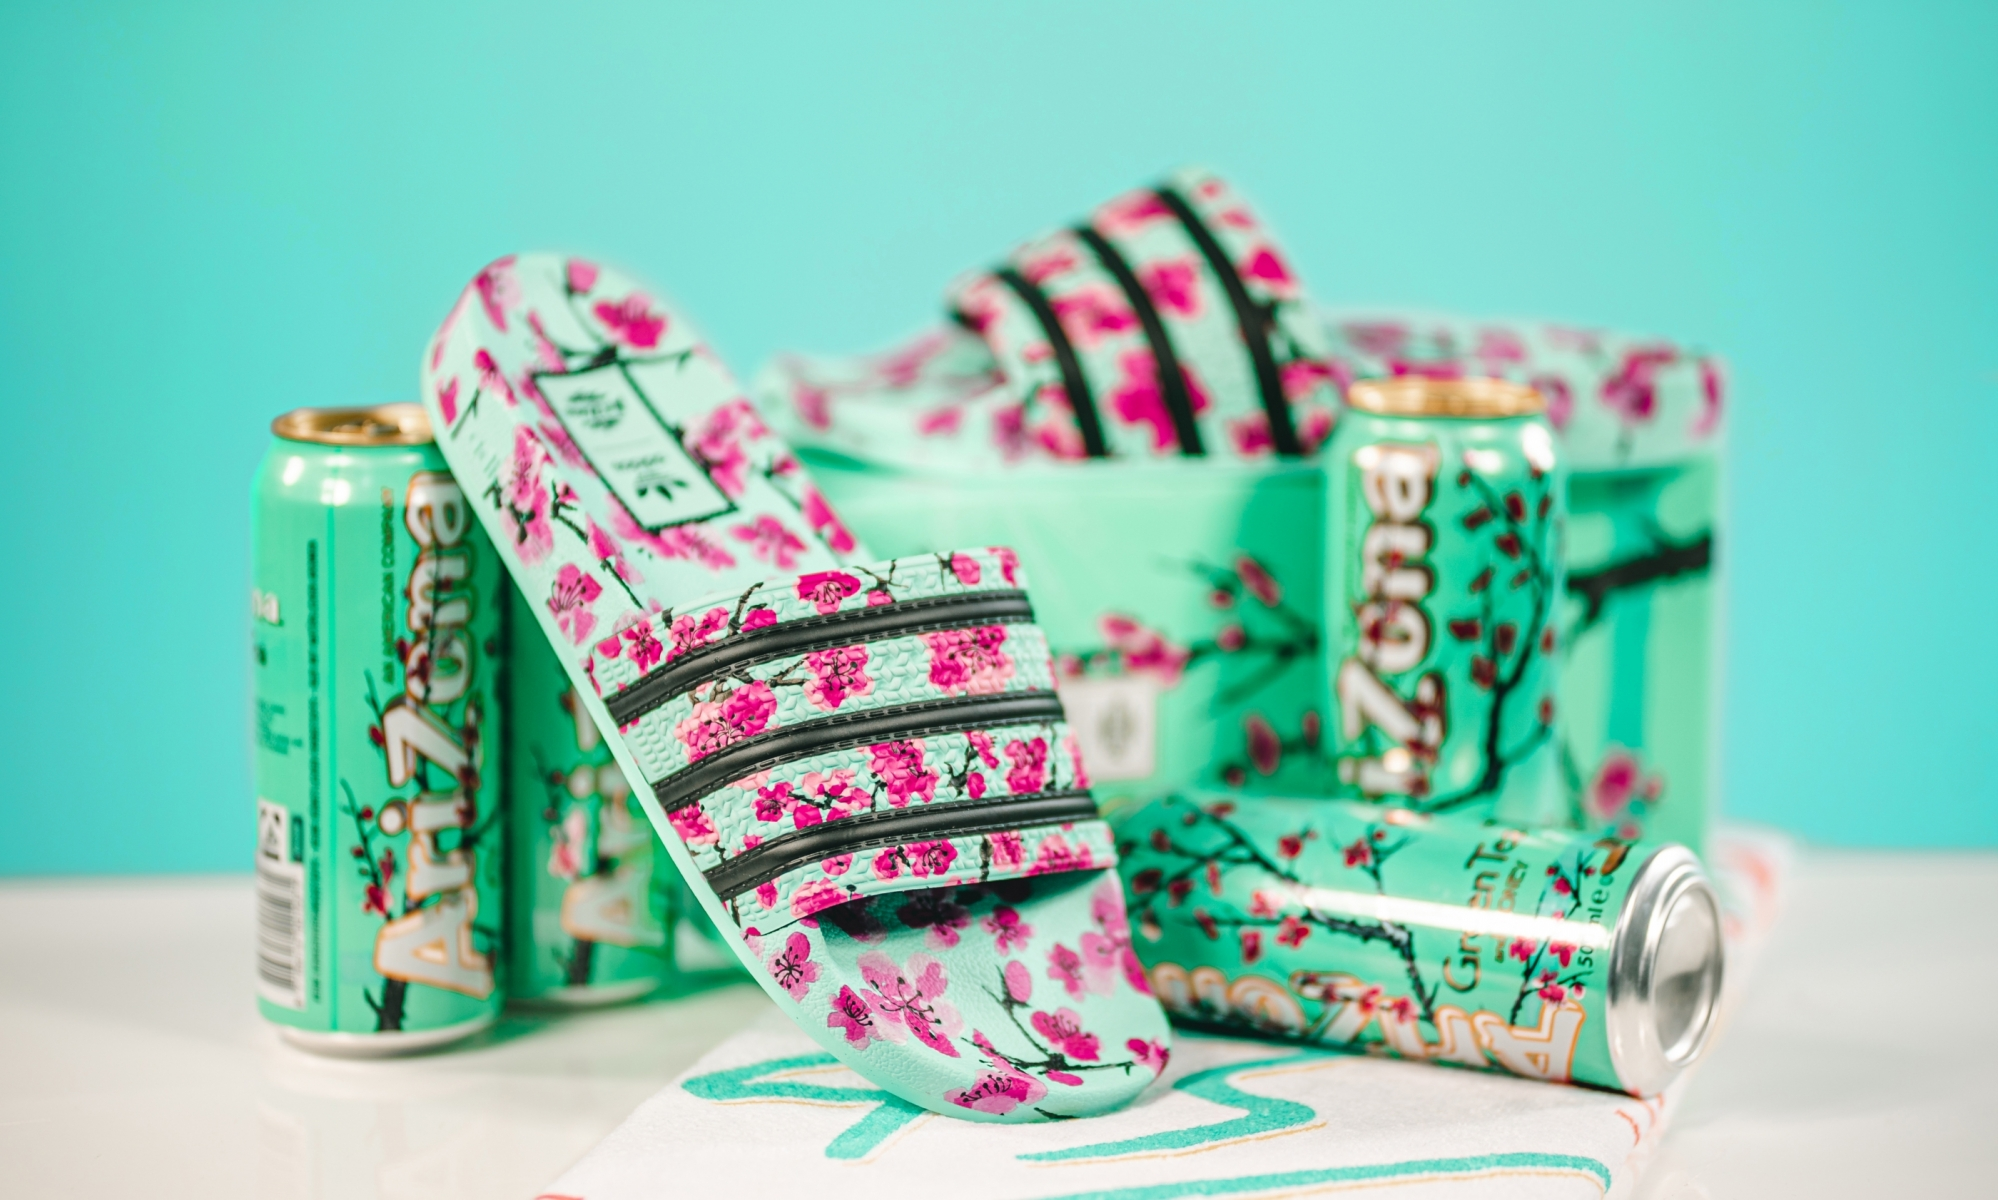 AriZona Iced Tea x adidas Second Collection: When & Where to Buy